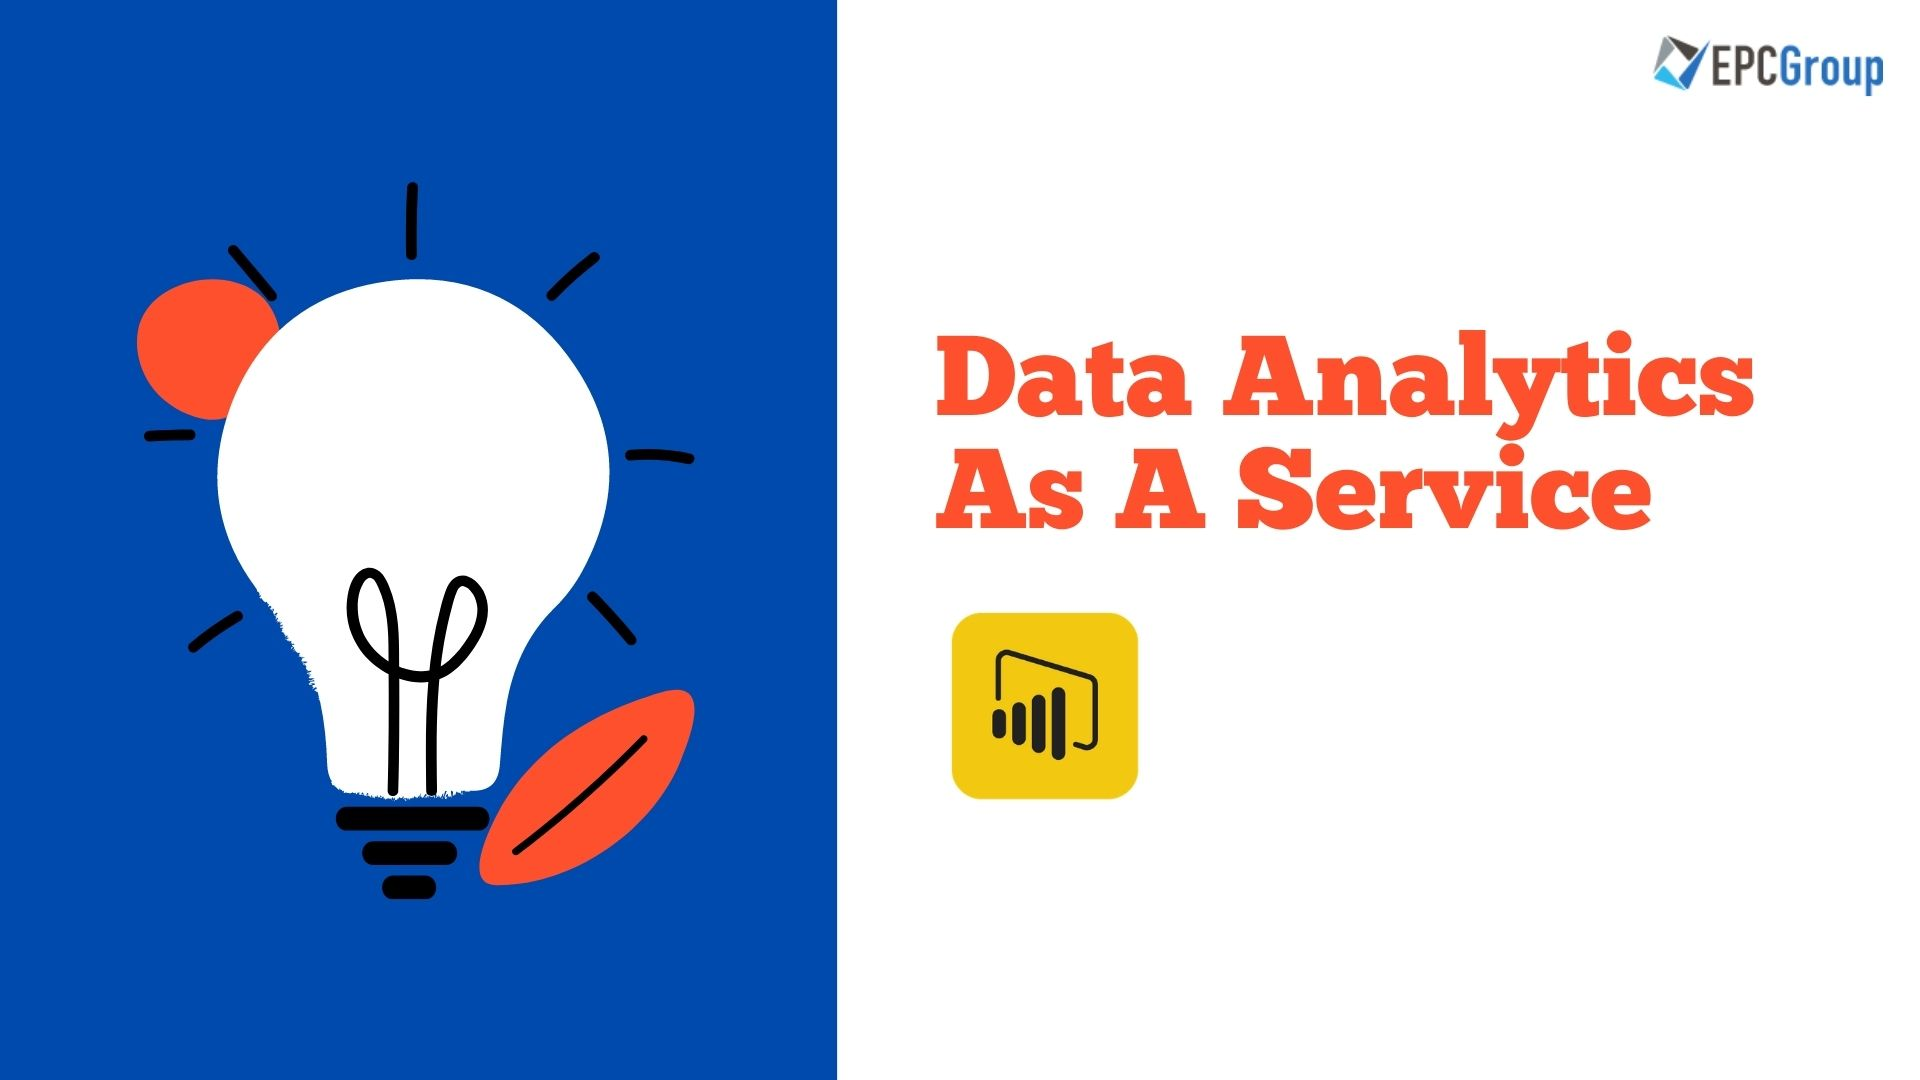 Benefits Of Data Analytics As A Service - thumb image